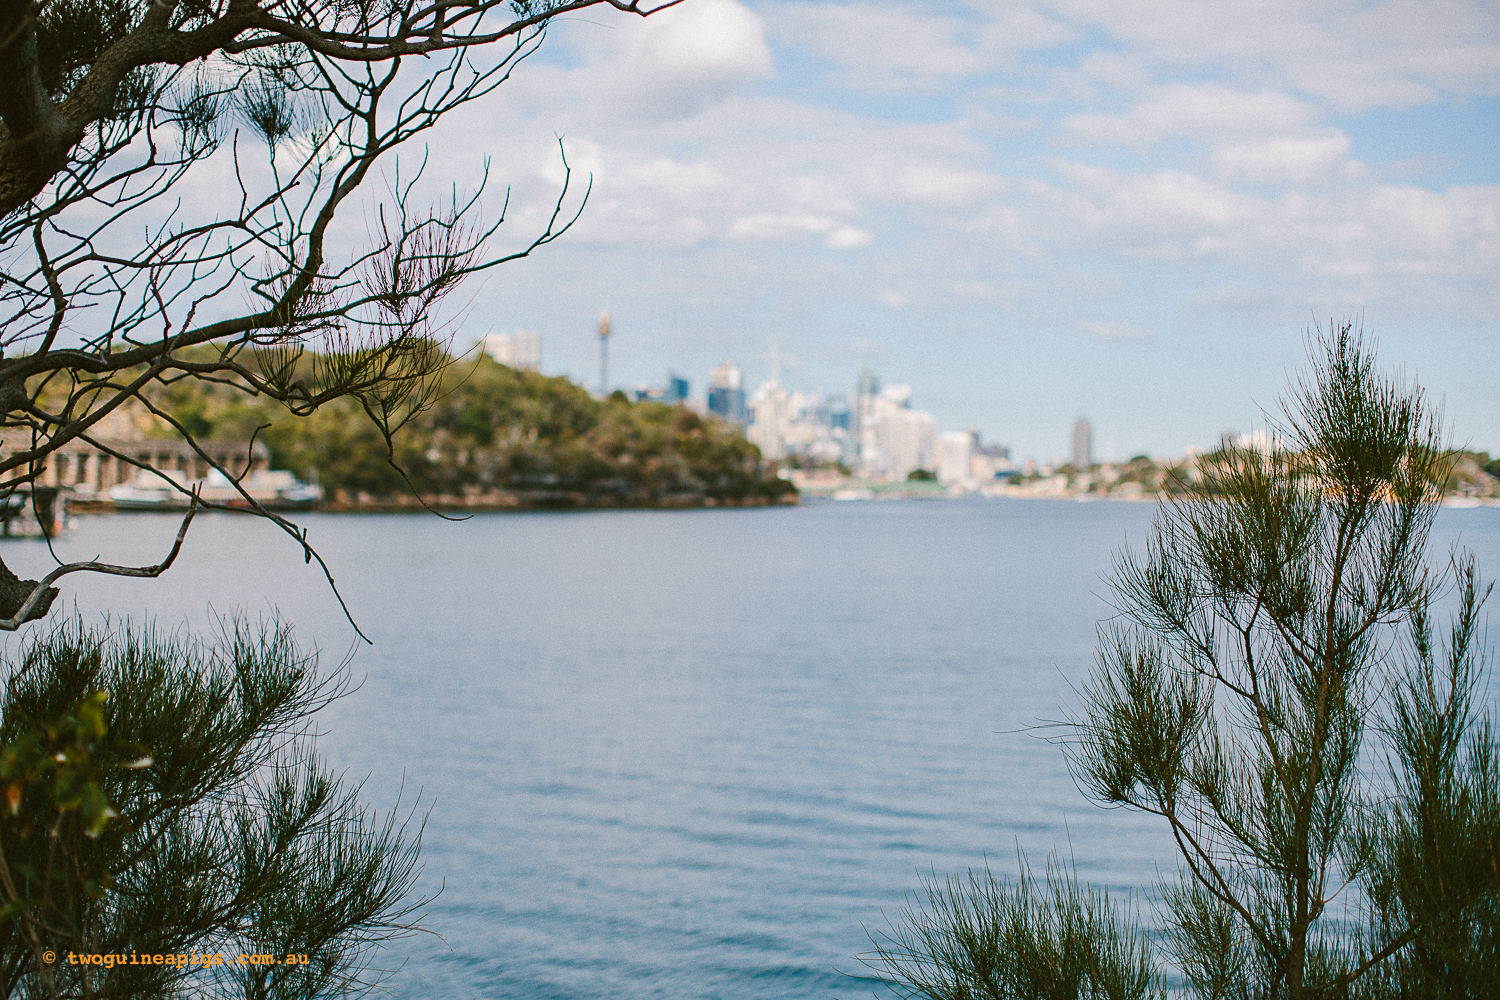 twoguineapigs_pet_photography_berry_island_reserve_wollstonecraft_location_scout_1500-38.jpg